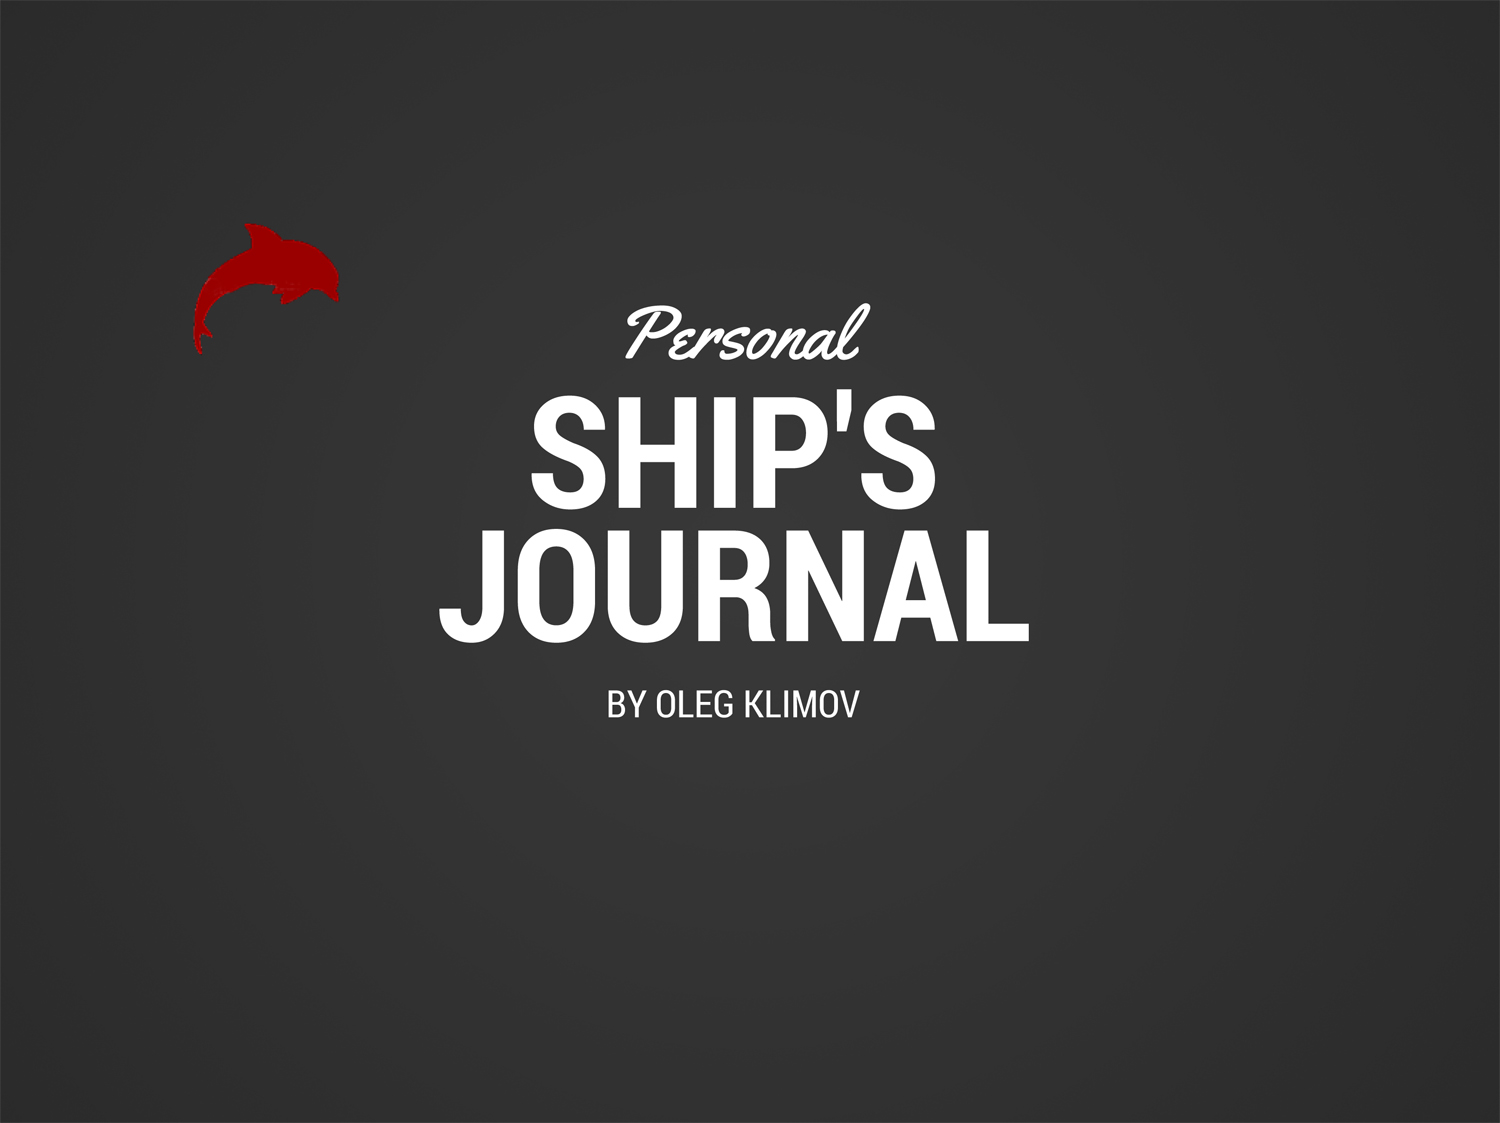 Ship's journal by Oleg Klimov